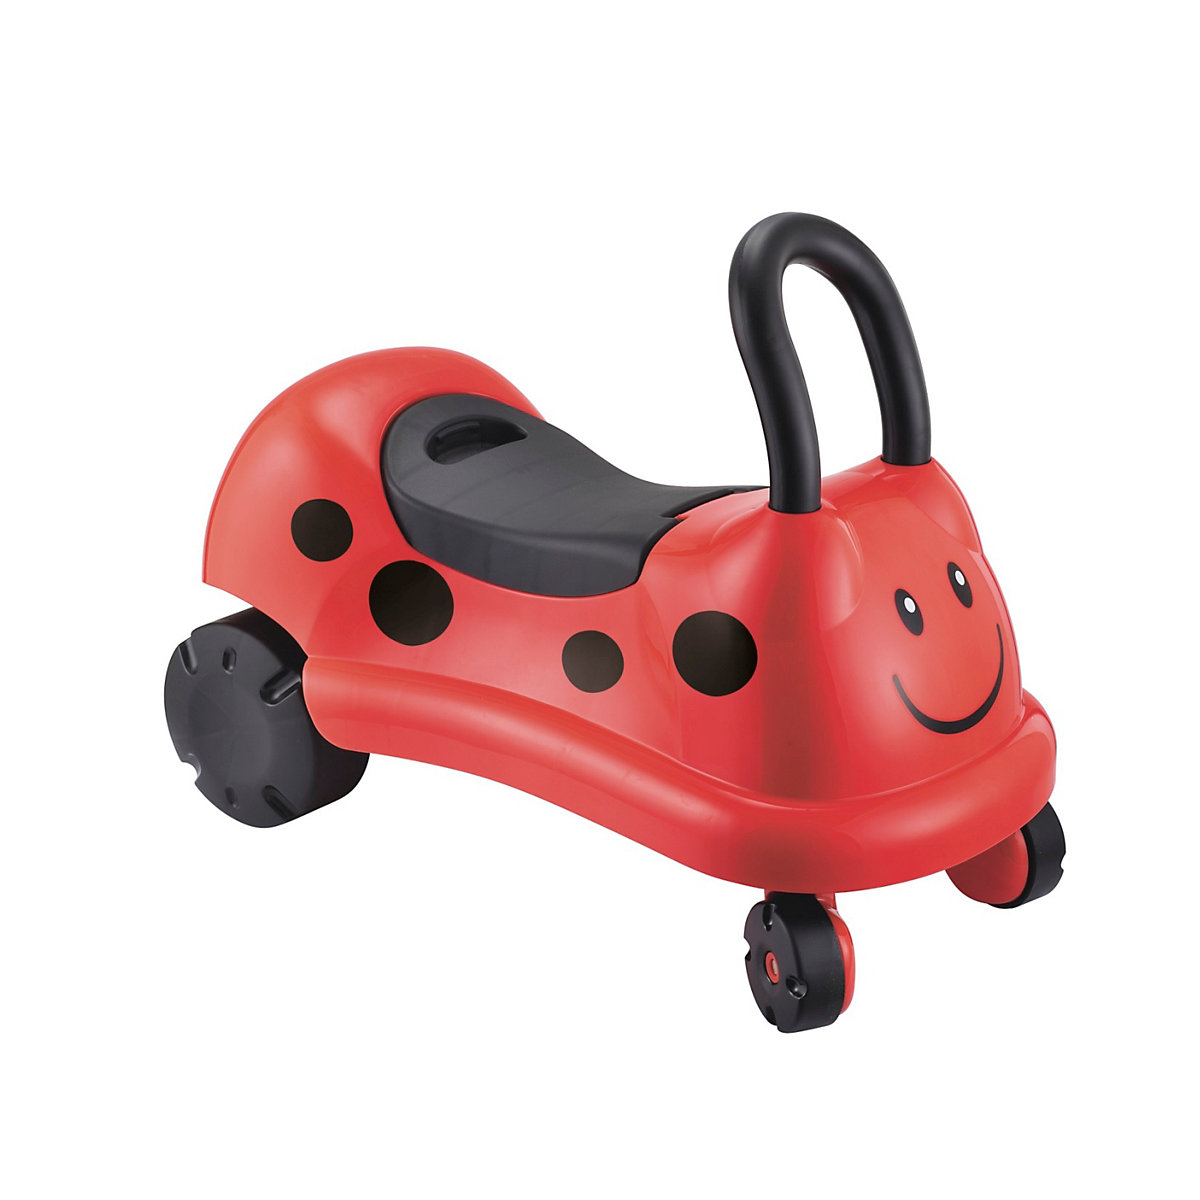 New ELC Boys and Girls Easy Wheels Ladybird Ride On Toy From 1 year - Ride On Gifts